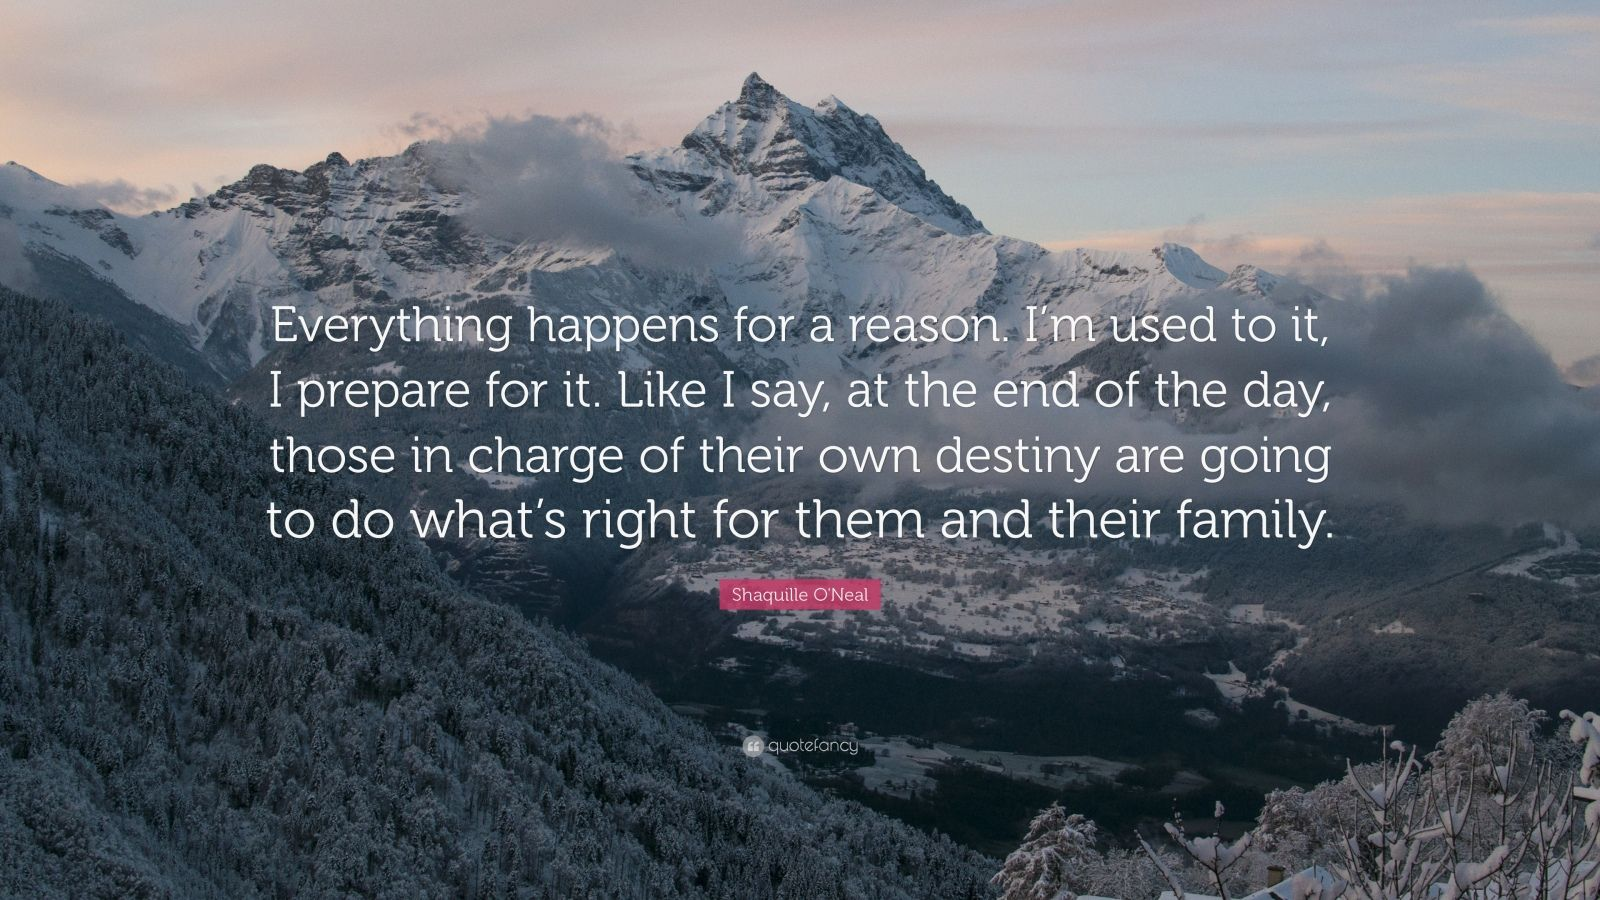 """Shaquille O'Neal Quote: """"Everything happens for a reason. I'm used to it, I prepare for it. Like I say, at the end of the day, those in charge of their own destiny are going to do what's right for them and their family."""""""